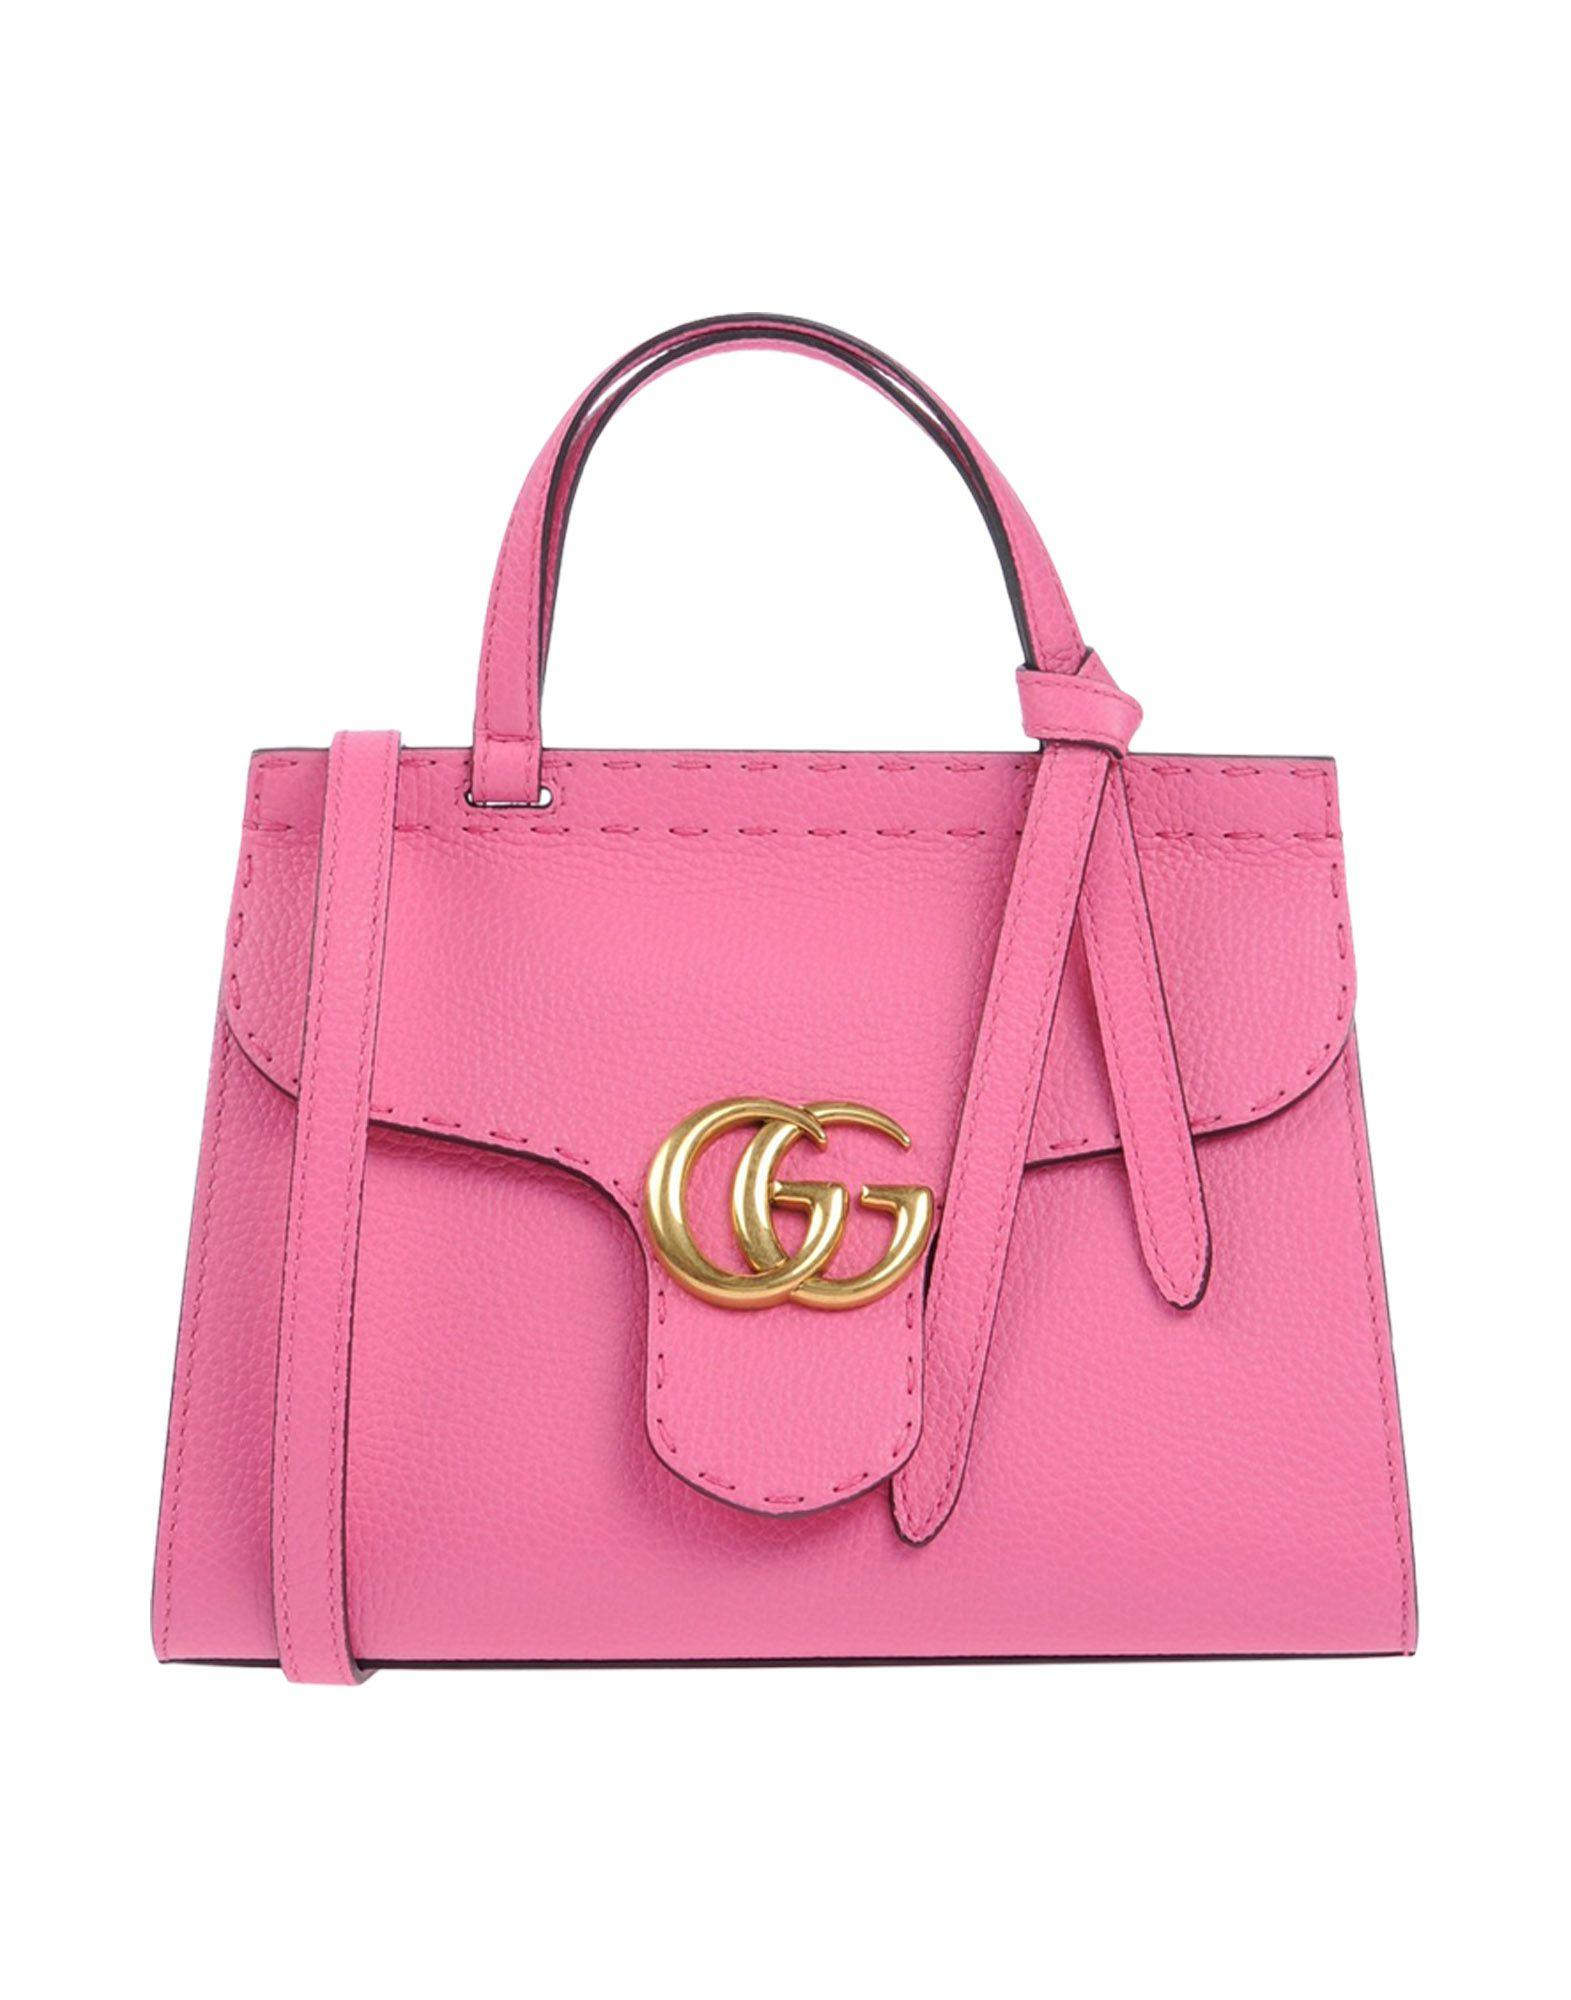 Gucci Handbag In Pink